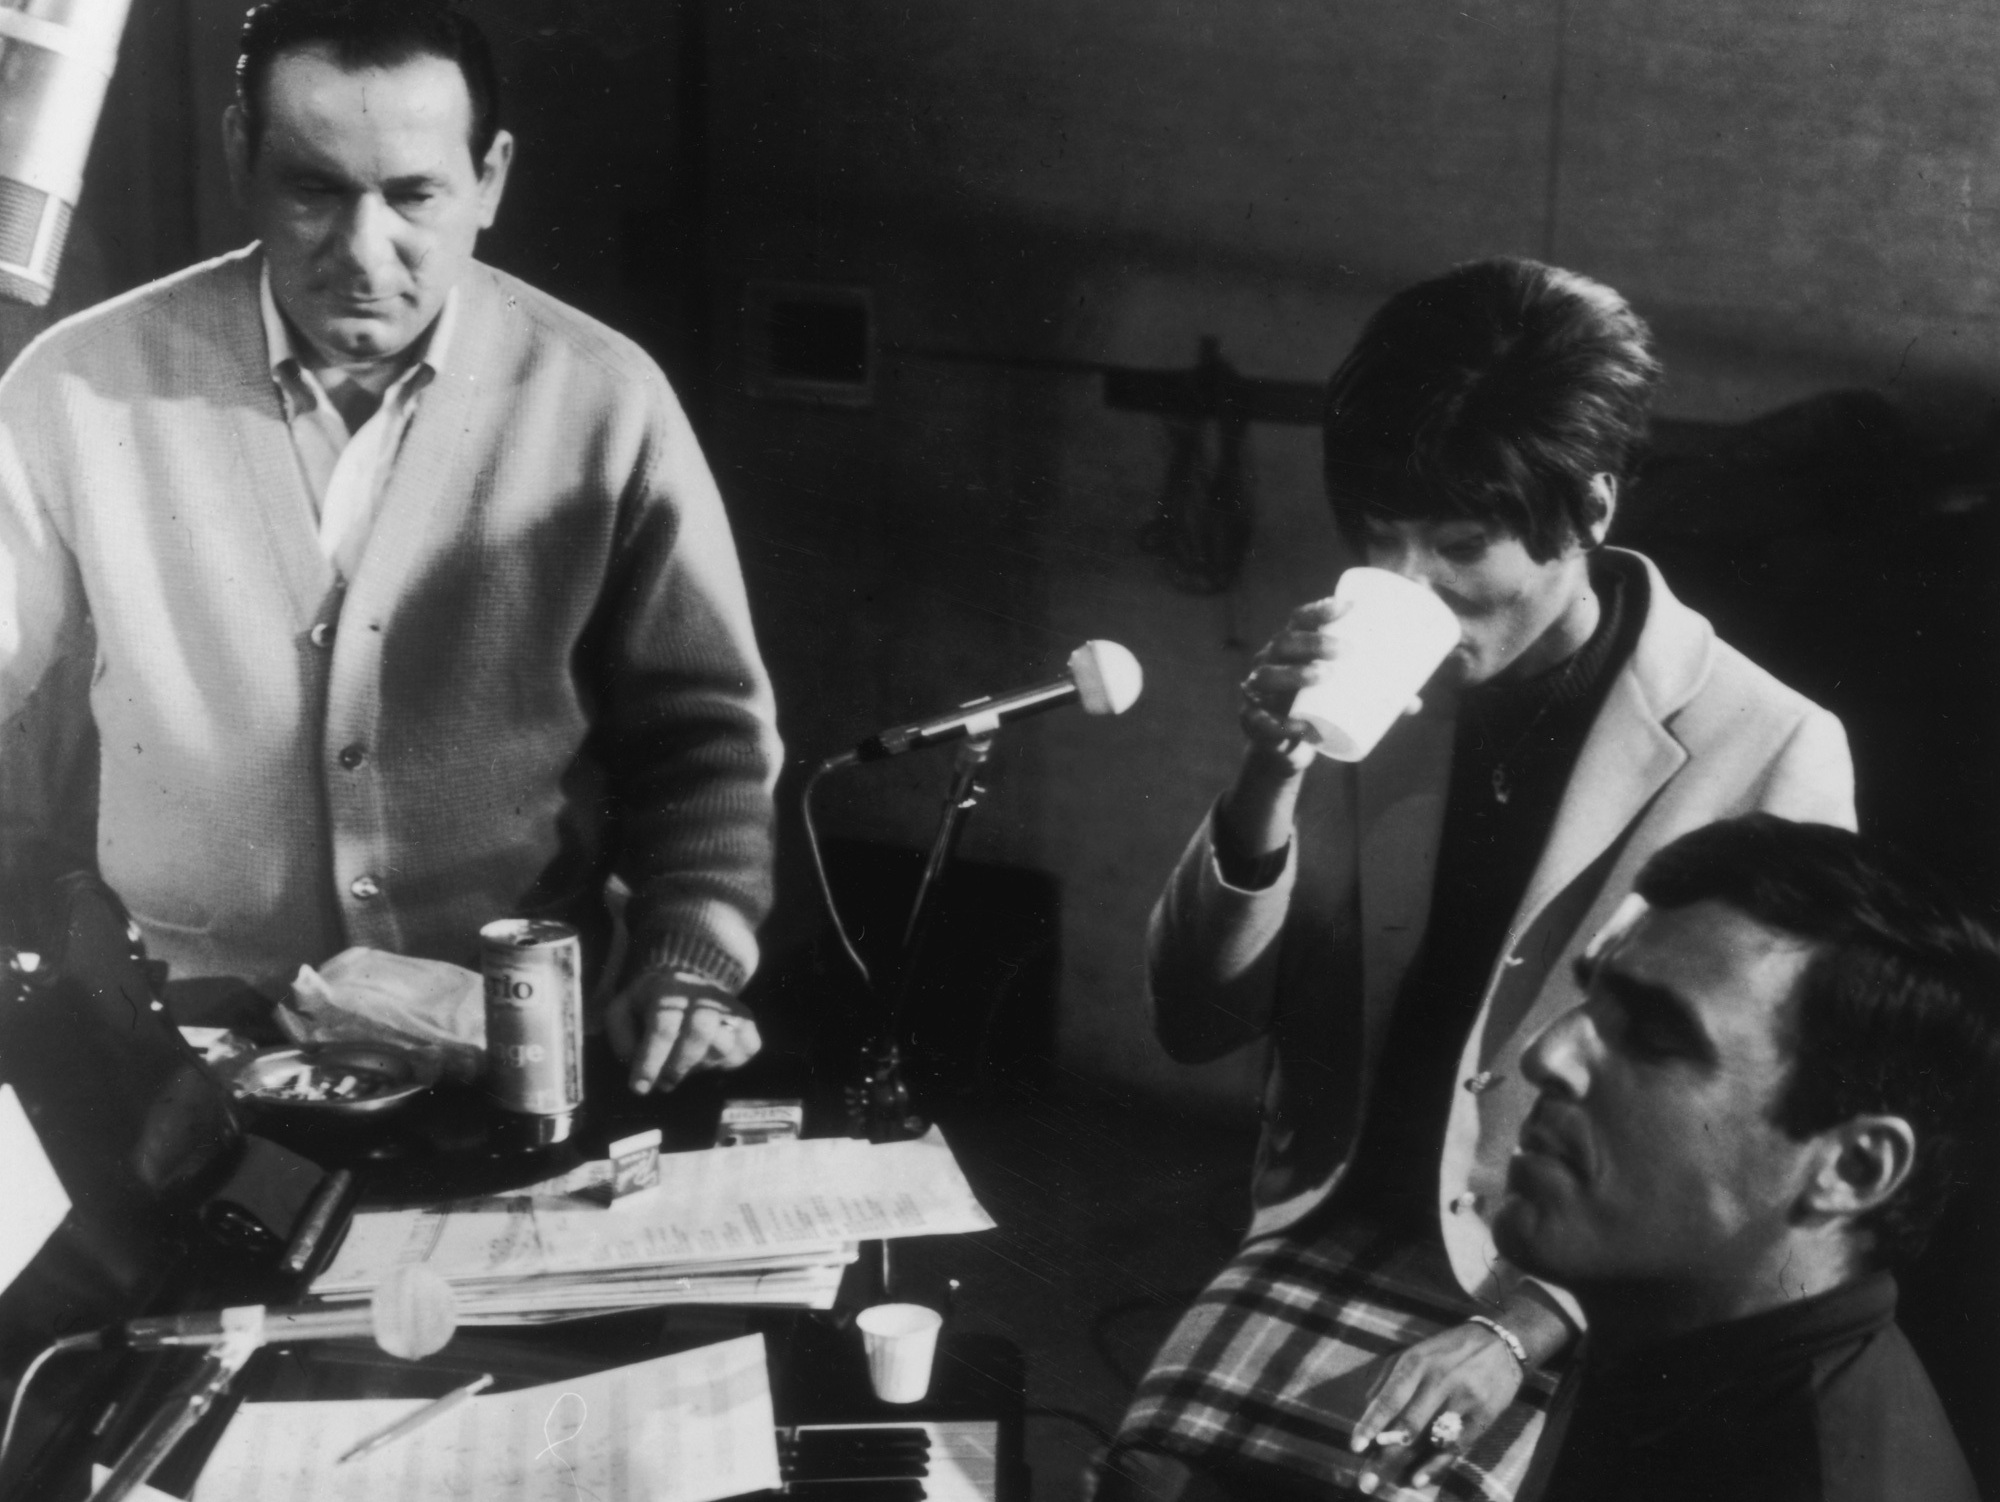 Burt Bacharach plays piano as Dionne Warwick has a drink and American lyricist Hal David looks on, in a 1962 recording session.